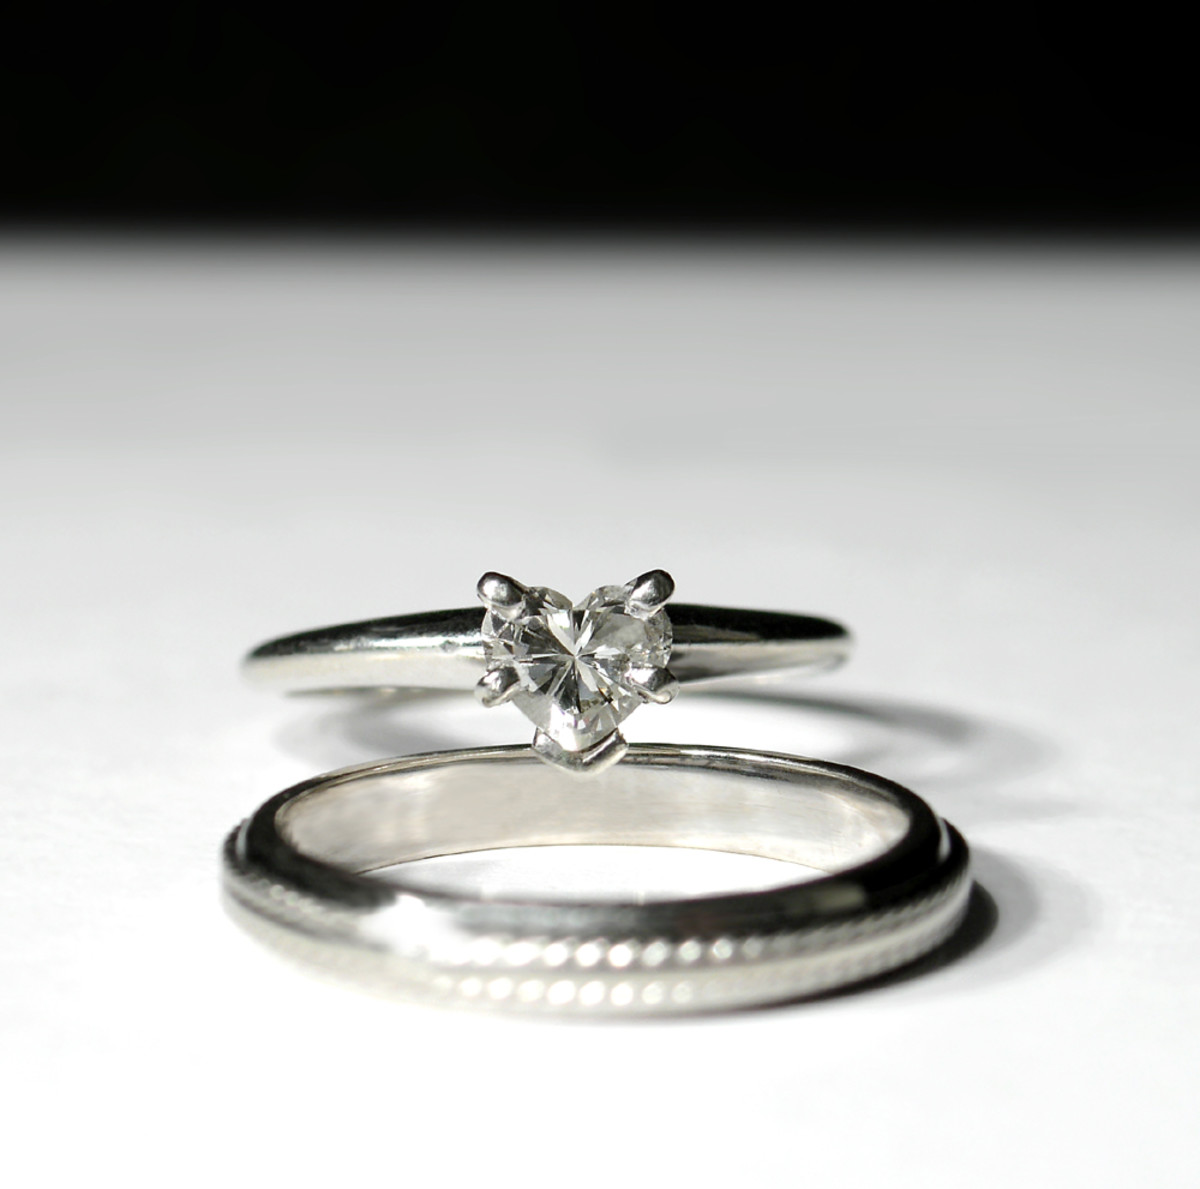 How Much Wedding Ring Cost How Much Should An Engagement Ring Cost Hubpages